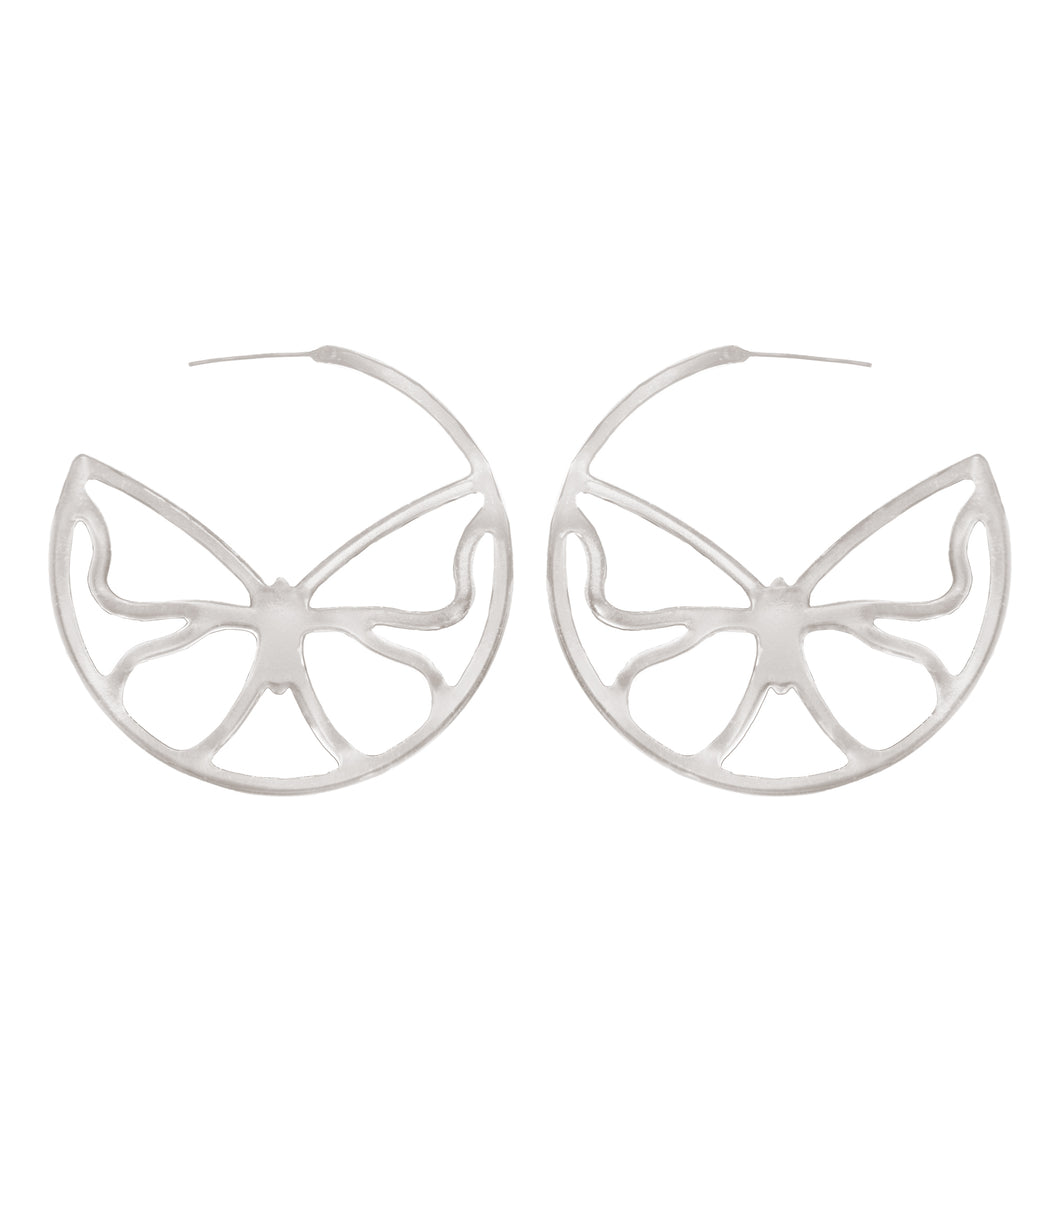 Breeze earrings butterfly design silver tone